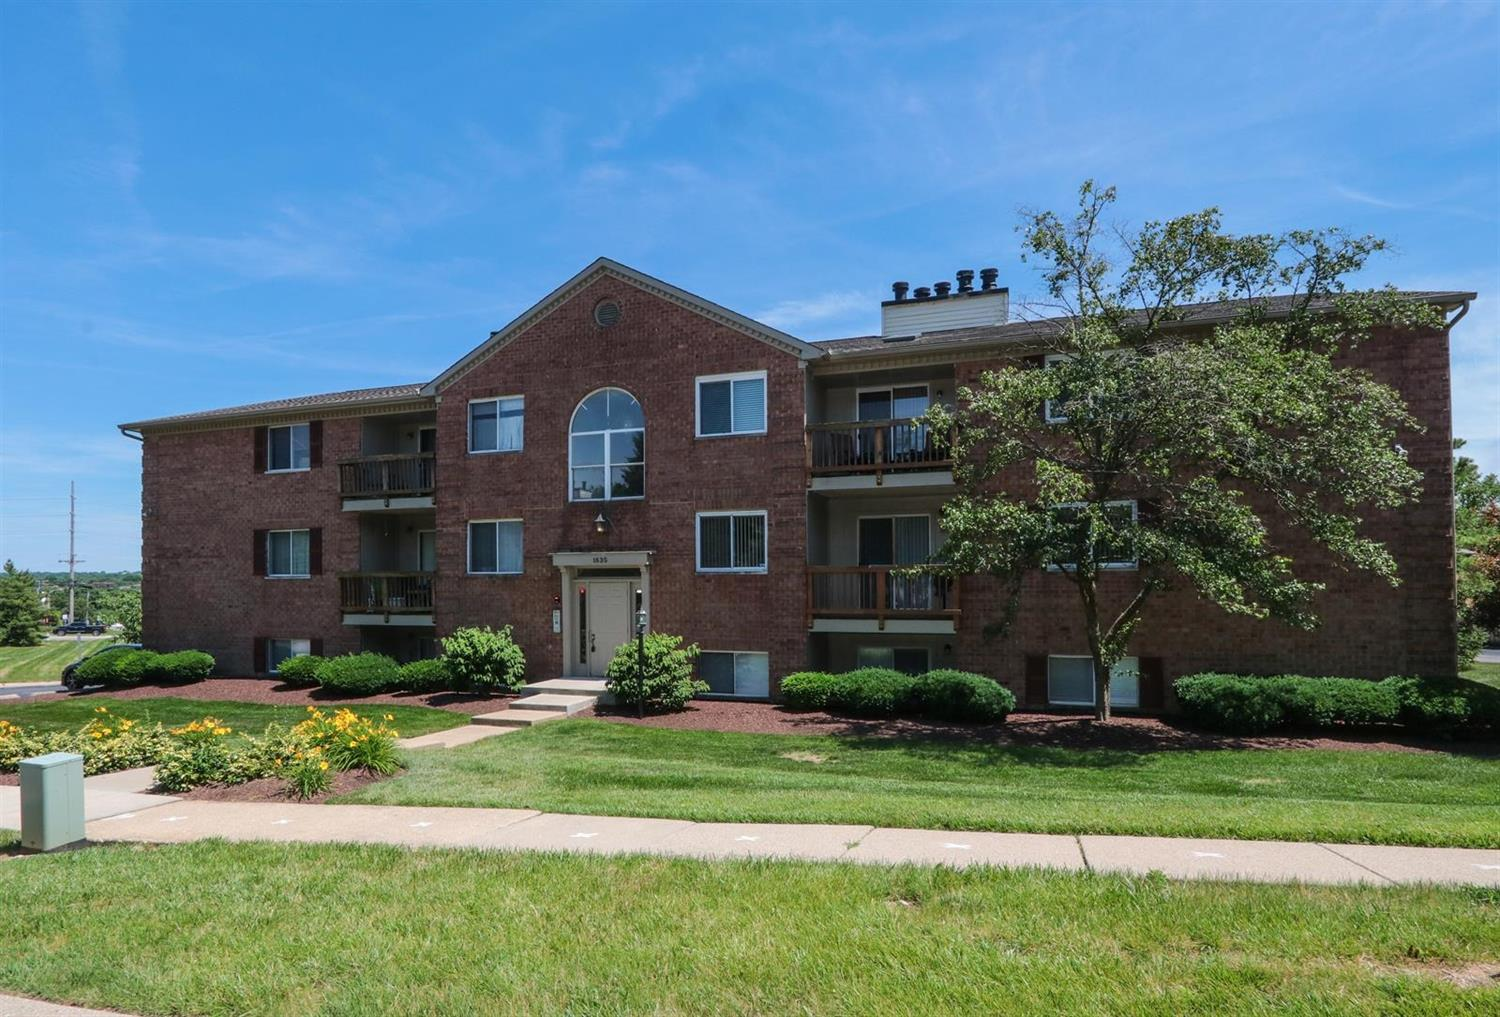 Property for sale at 1635 Gelhot Drive Unit: 20, Fairfield,  Ohio 45014